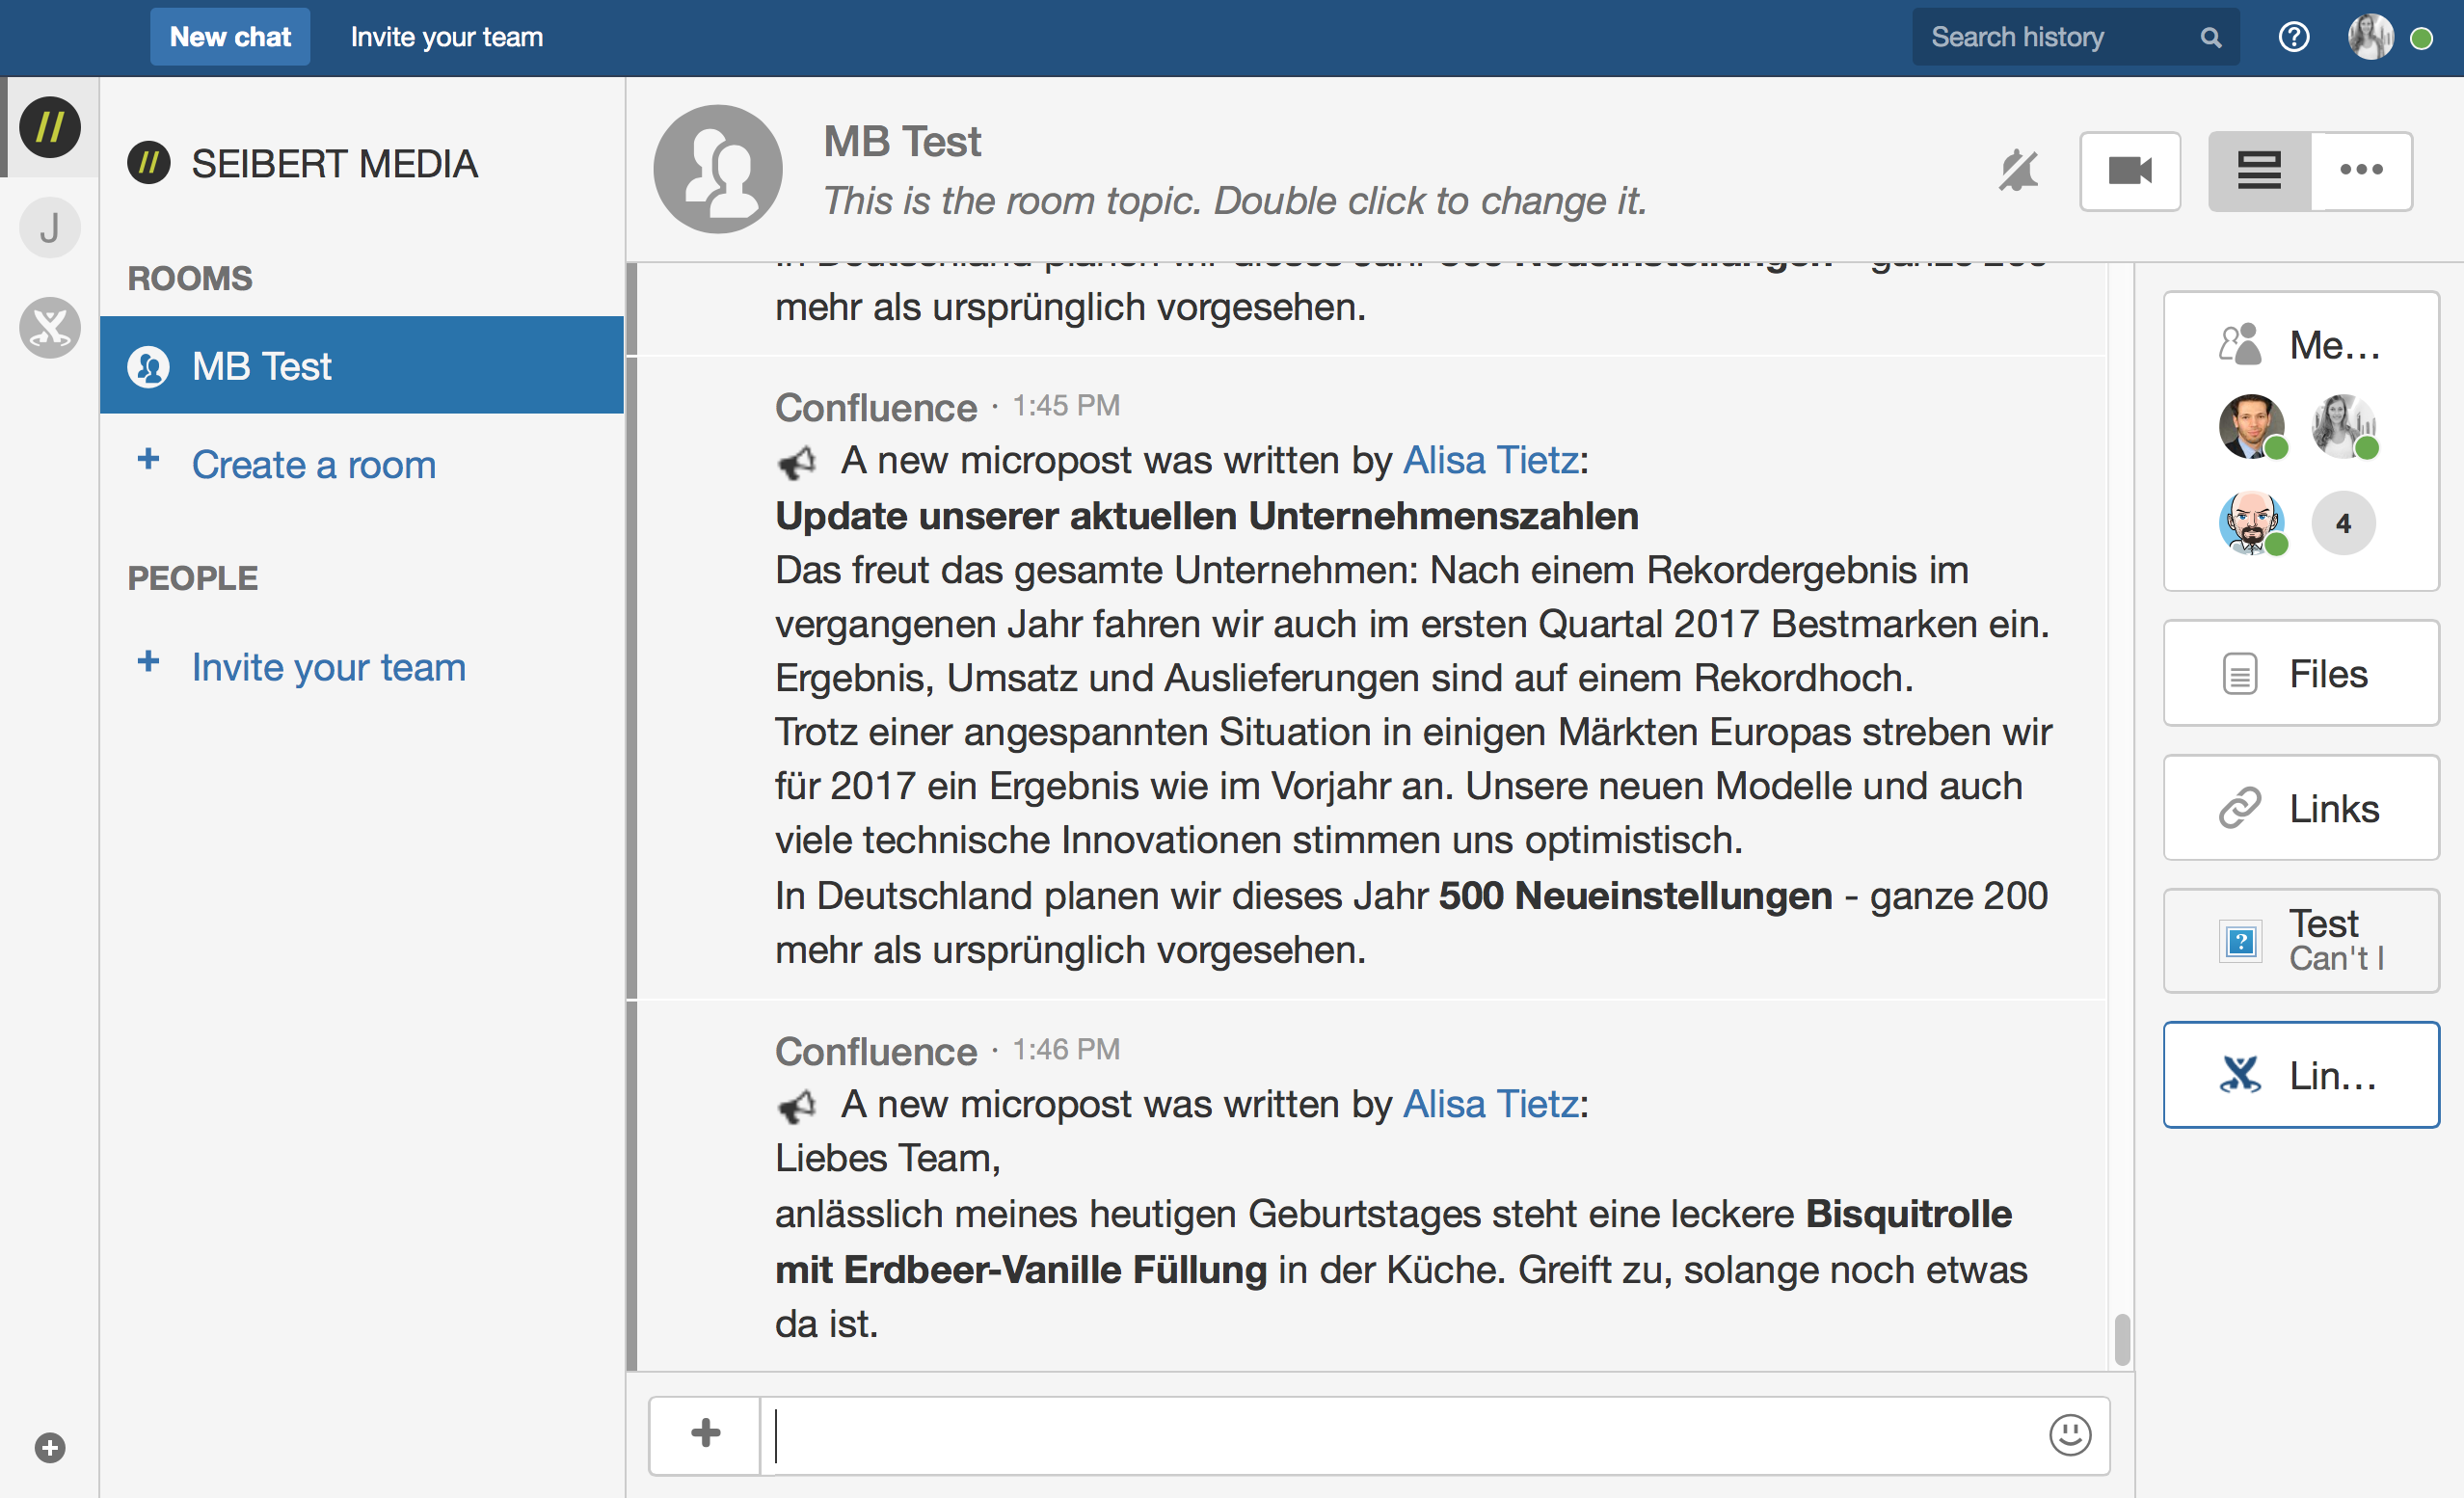 Hipchat notification of a new microblog post